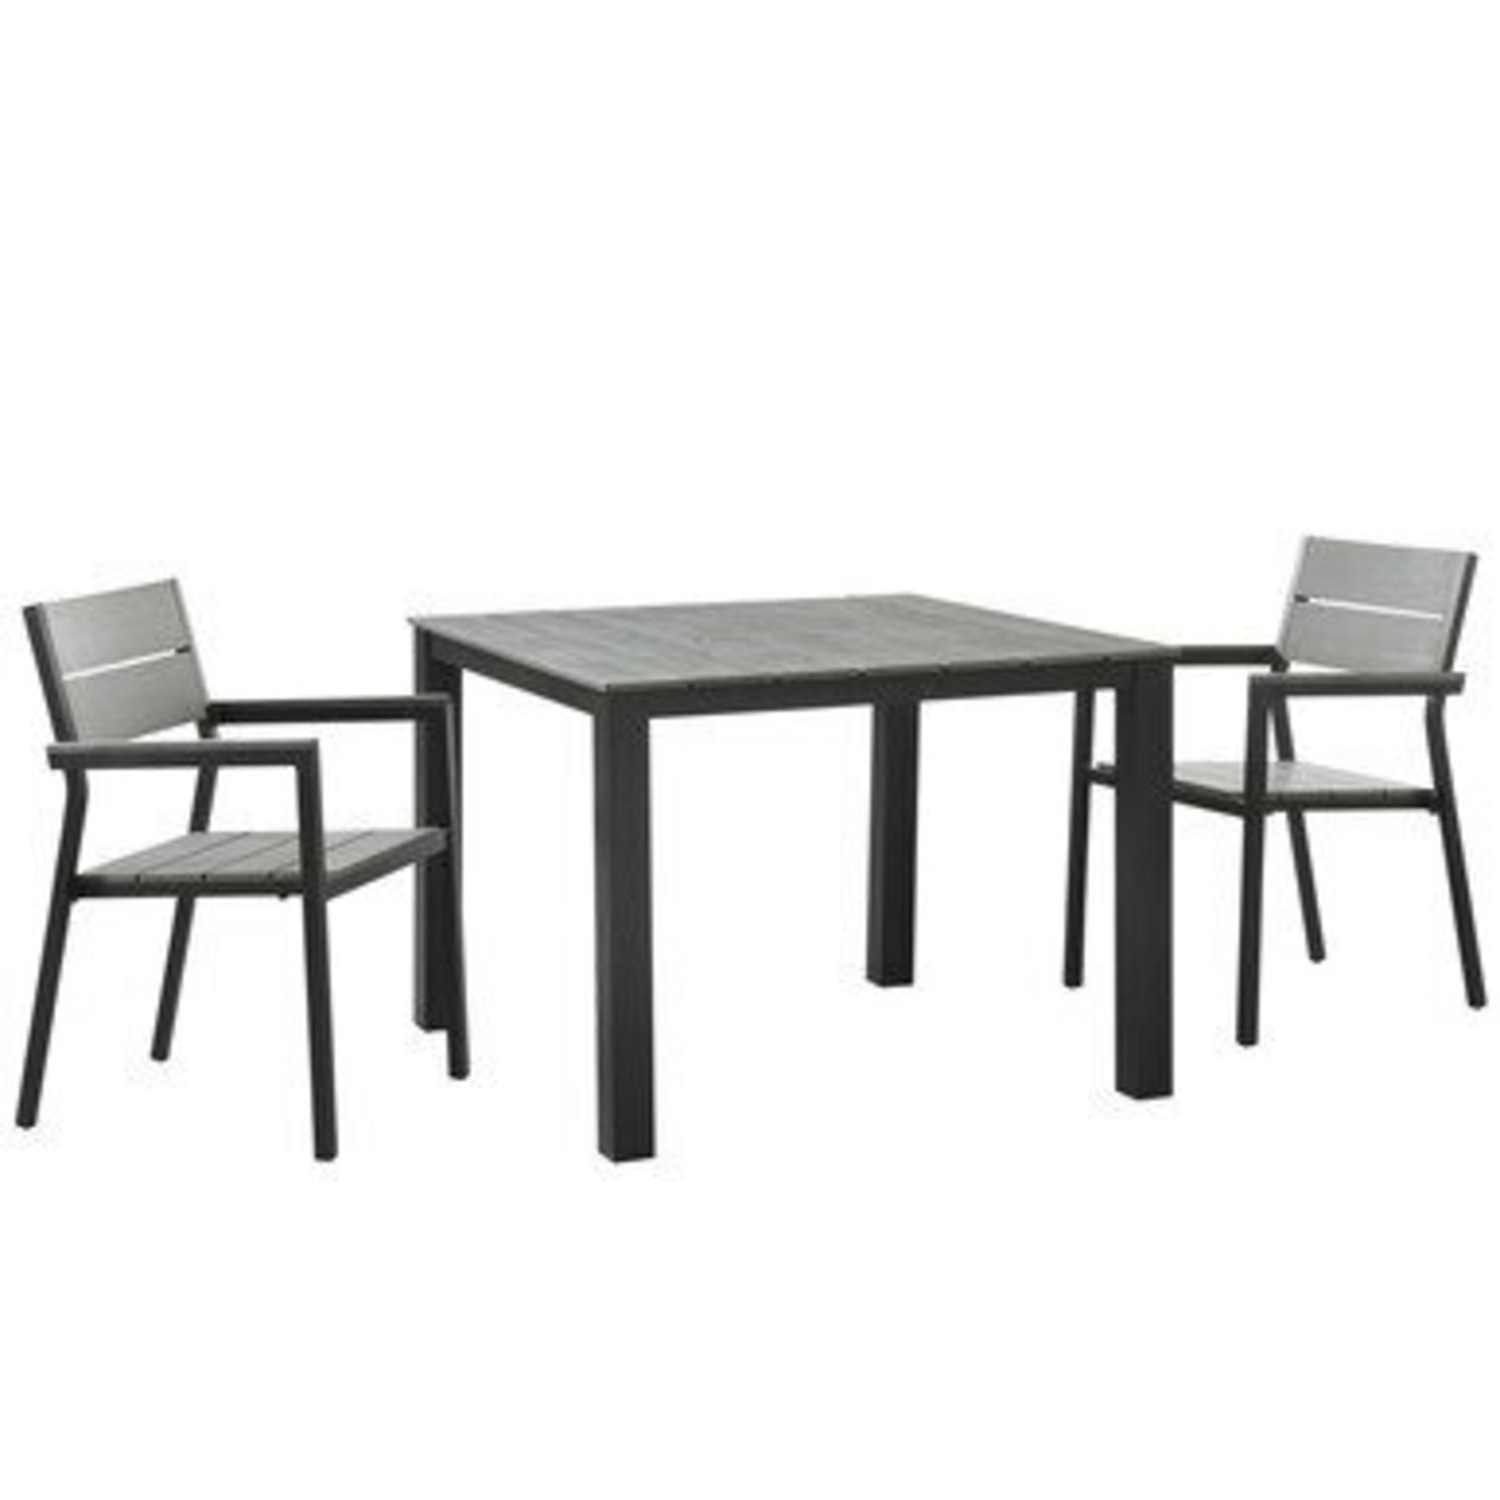 Modern 3-Piece Outdoor Dining Set In Brown & Gray - image-0